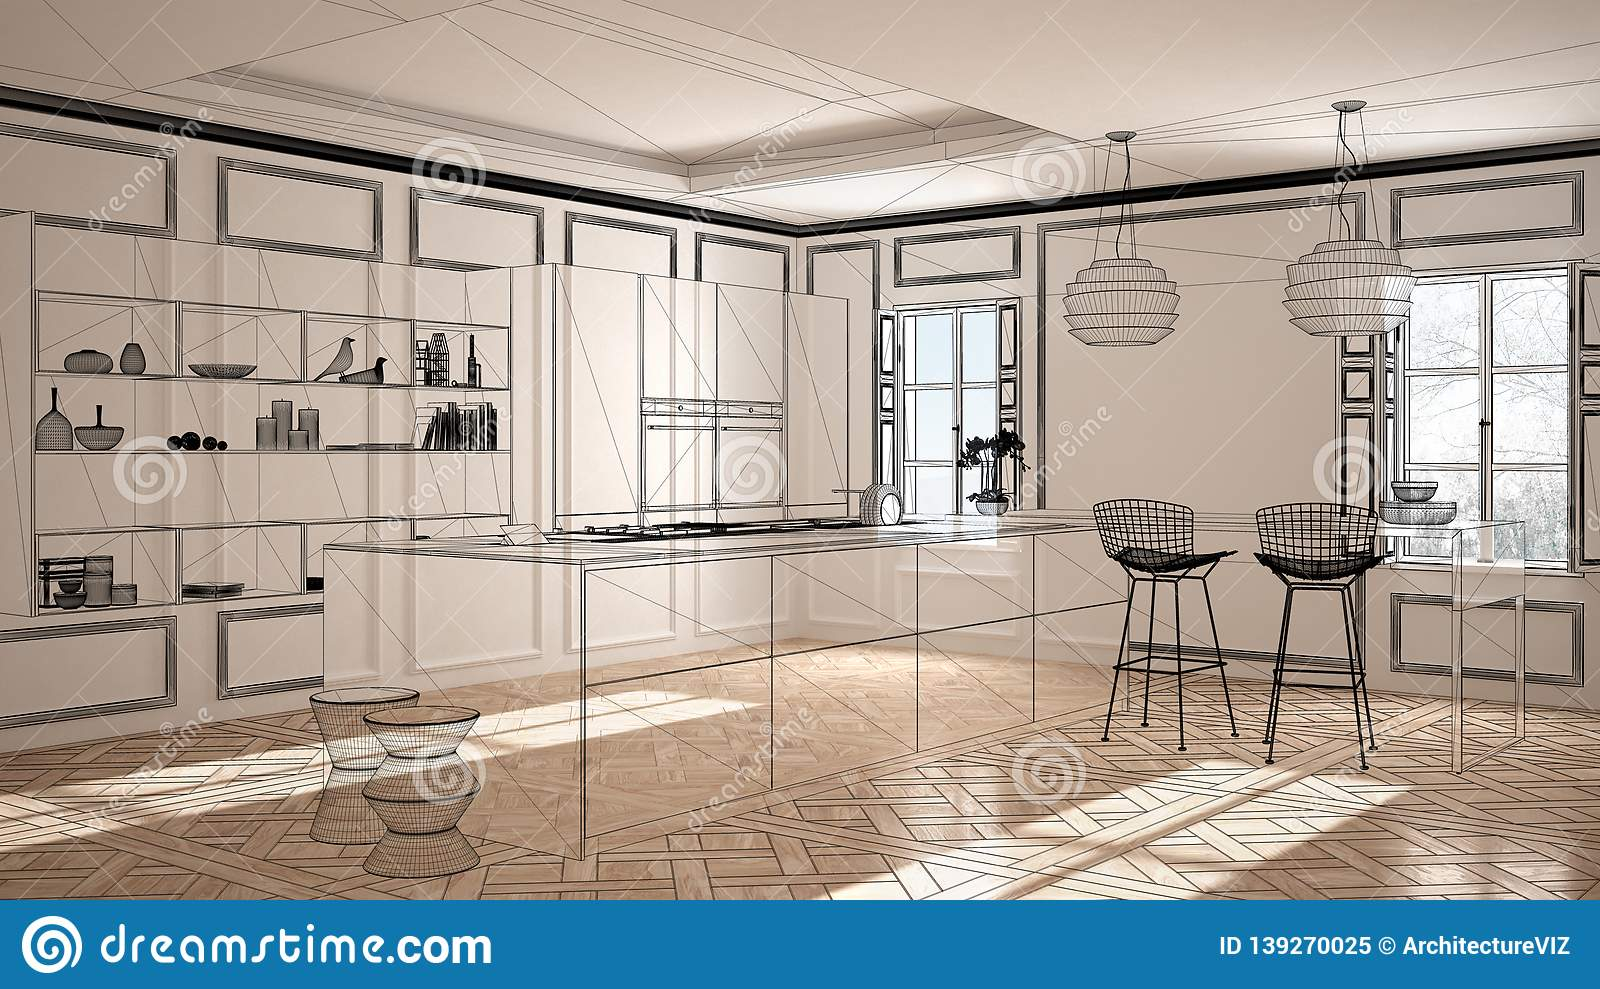 Empty White Interior With Parquet Floor And Stucco Walls, Custom  Architecture Design Project, Black